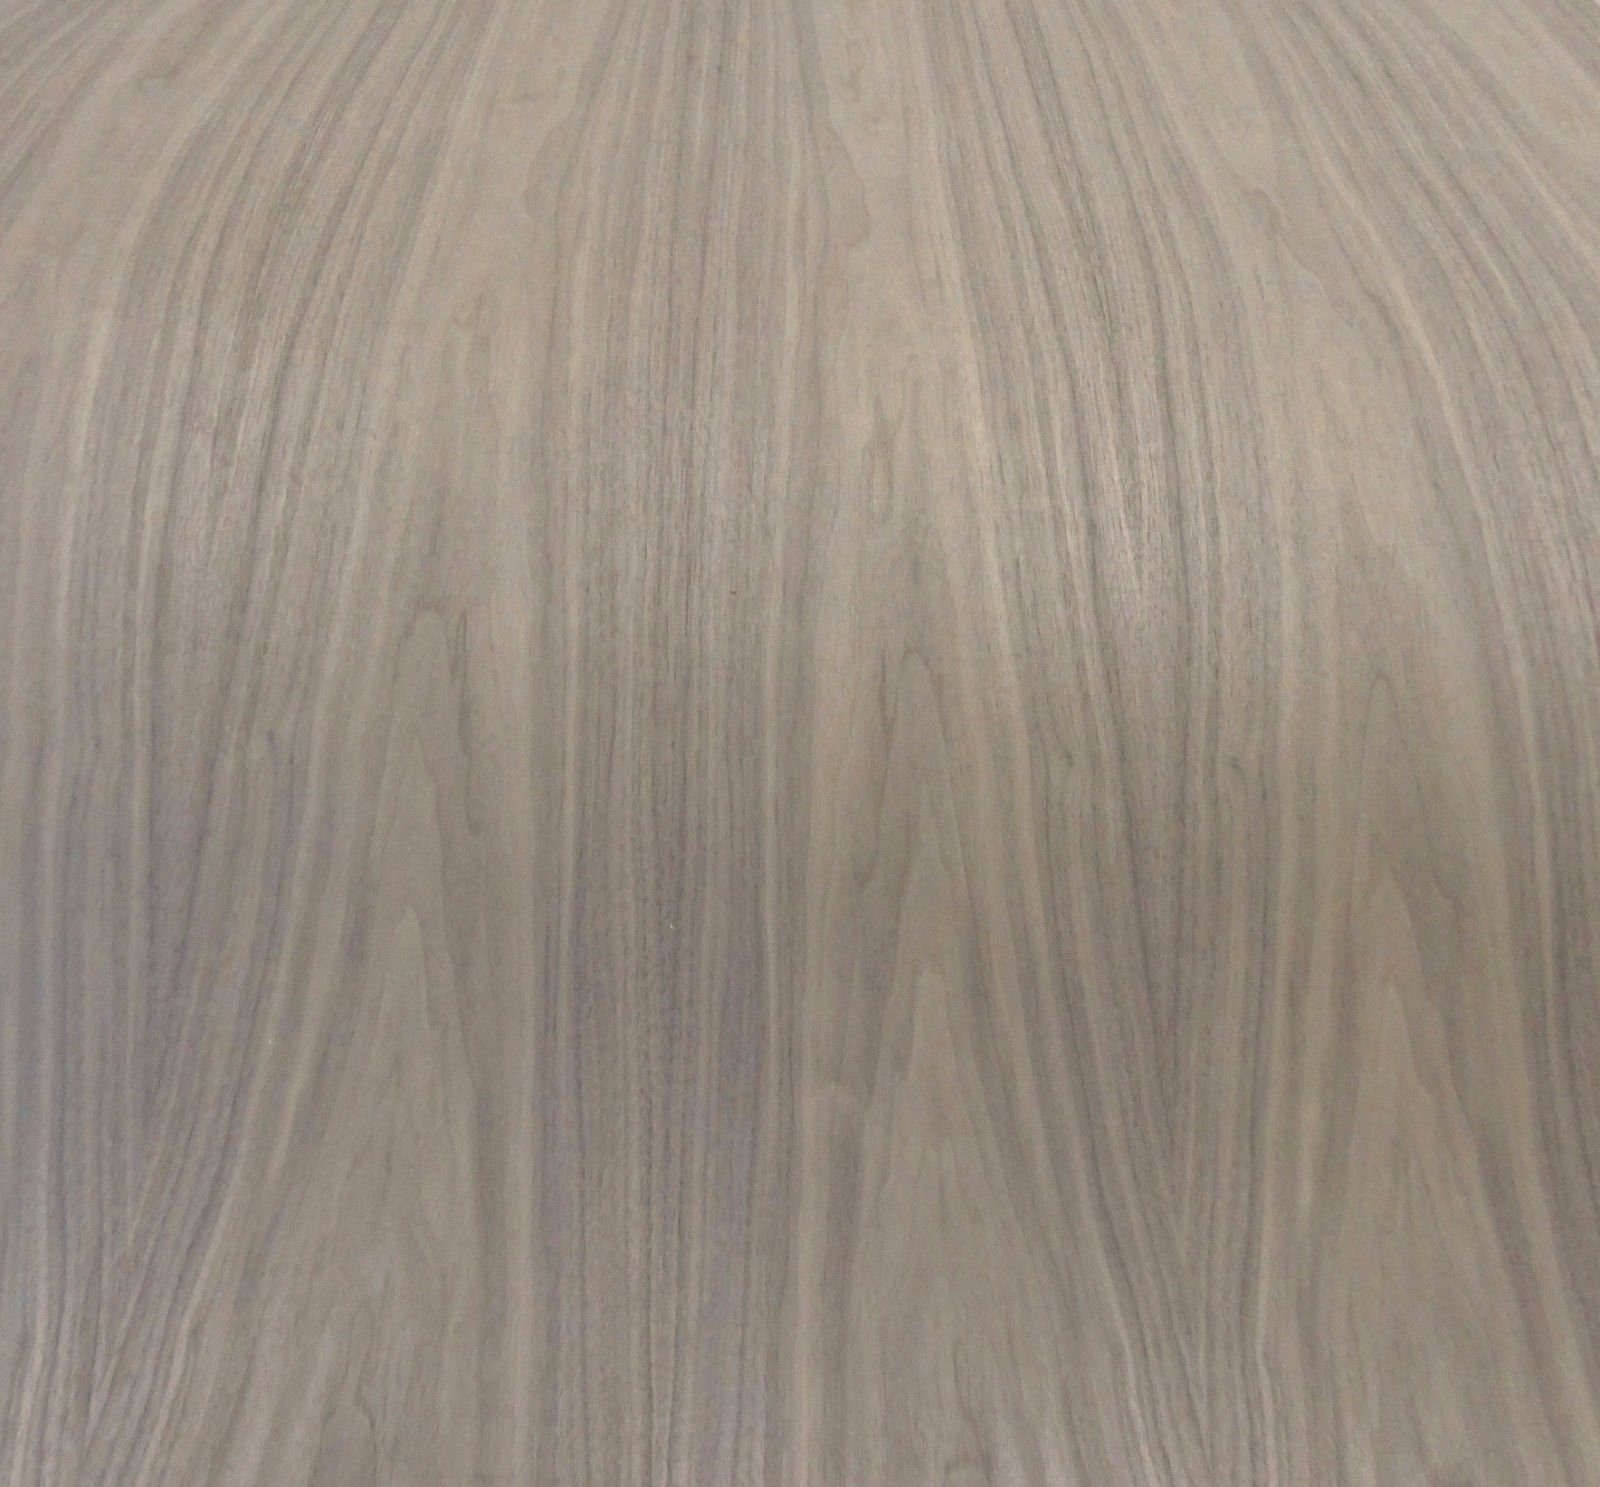 Walnut wood veneer 48'' x 120'' with paper backer 1/40'' thickness A grade quality